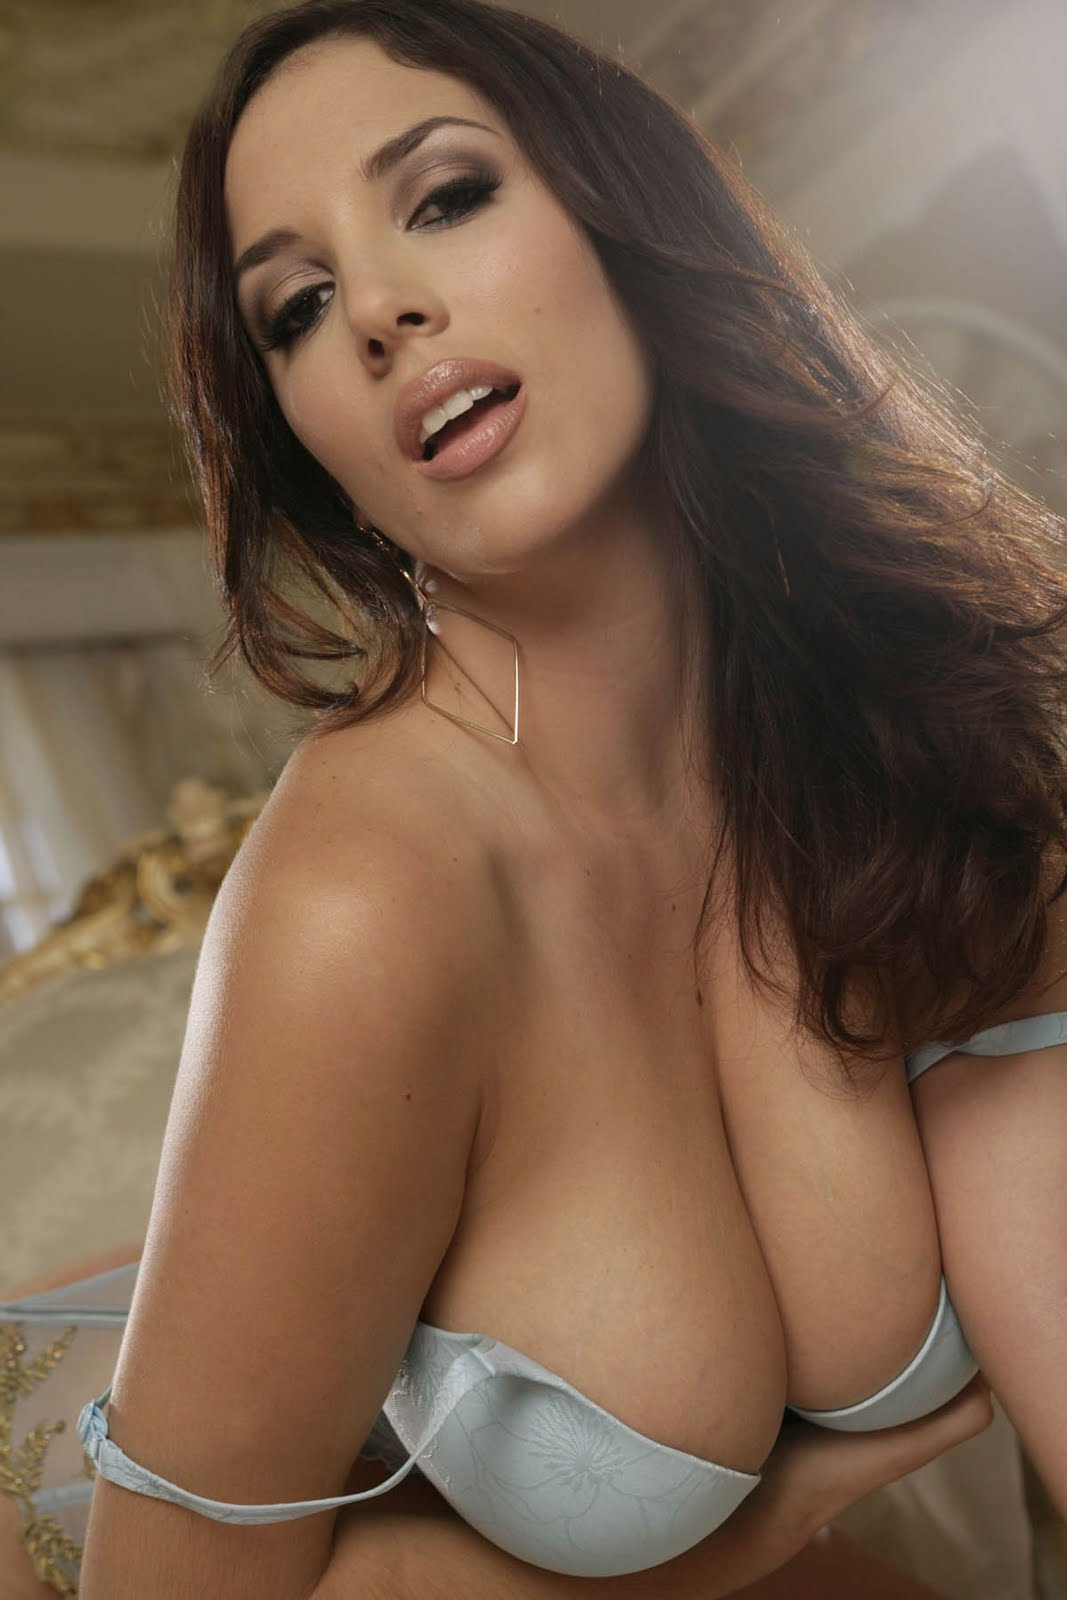 image Jelena jensen is the hitchhiking lesbian